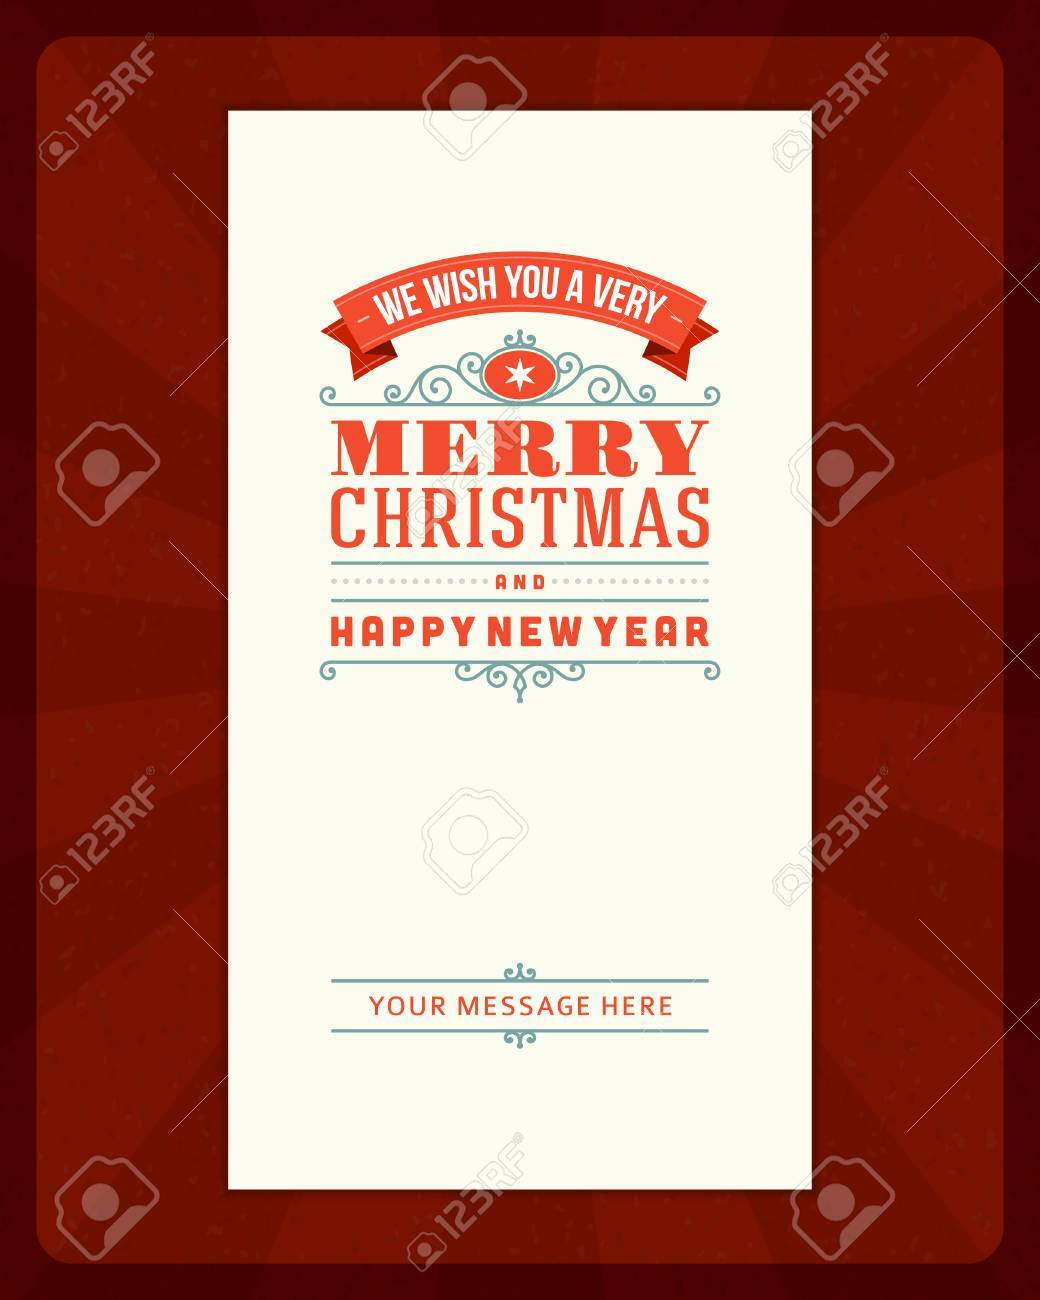 Merry Christmas Invitation Card Ornament Decoration Background